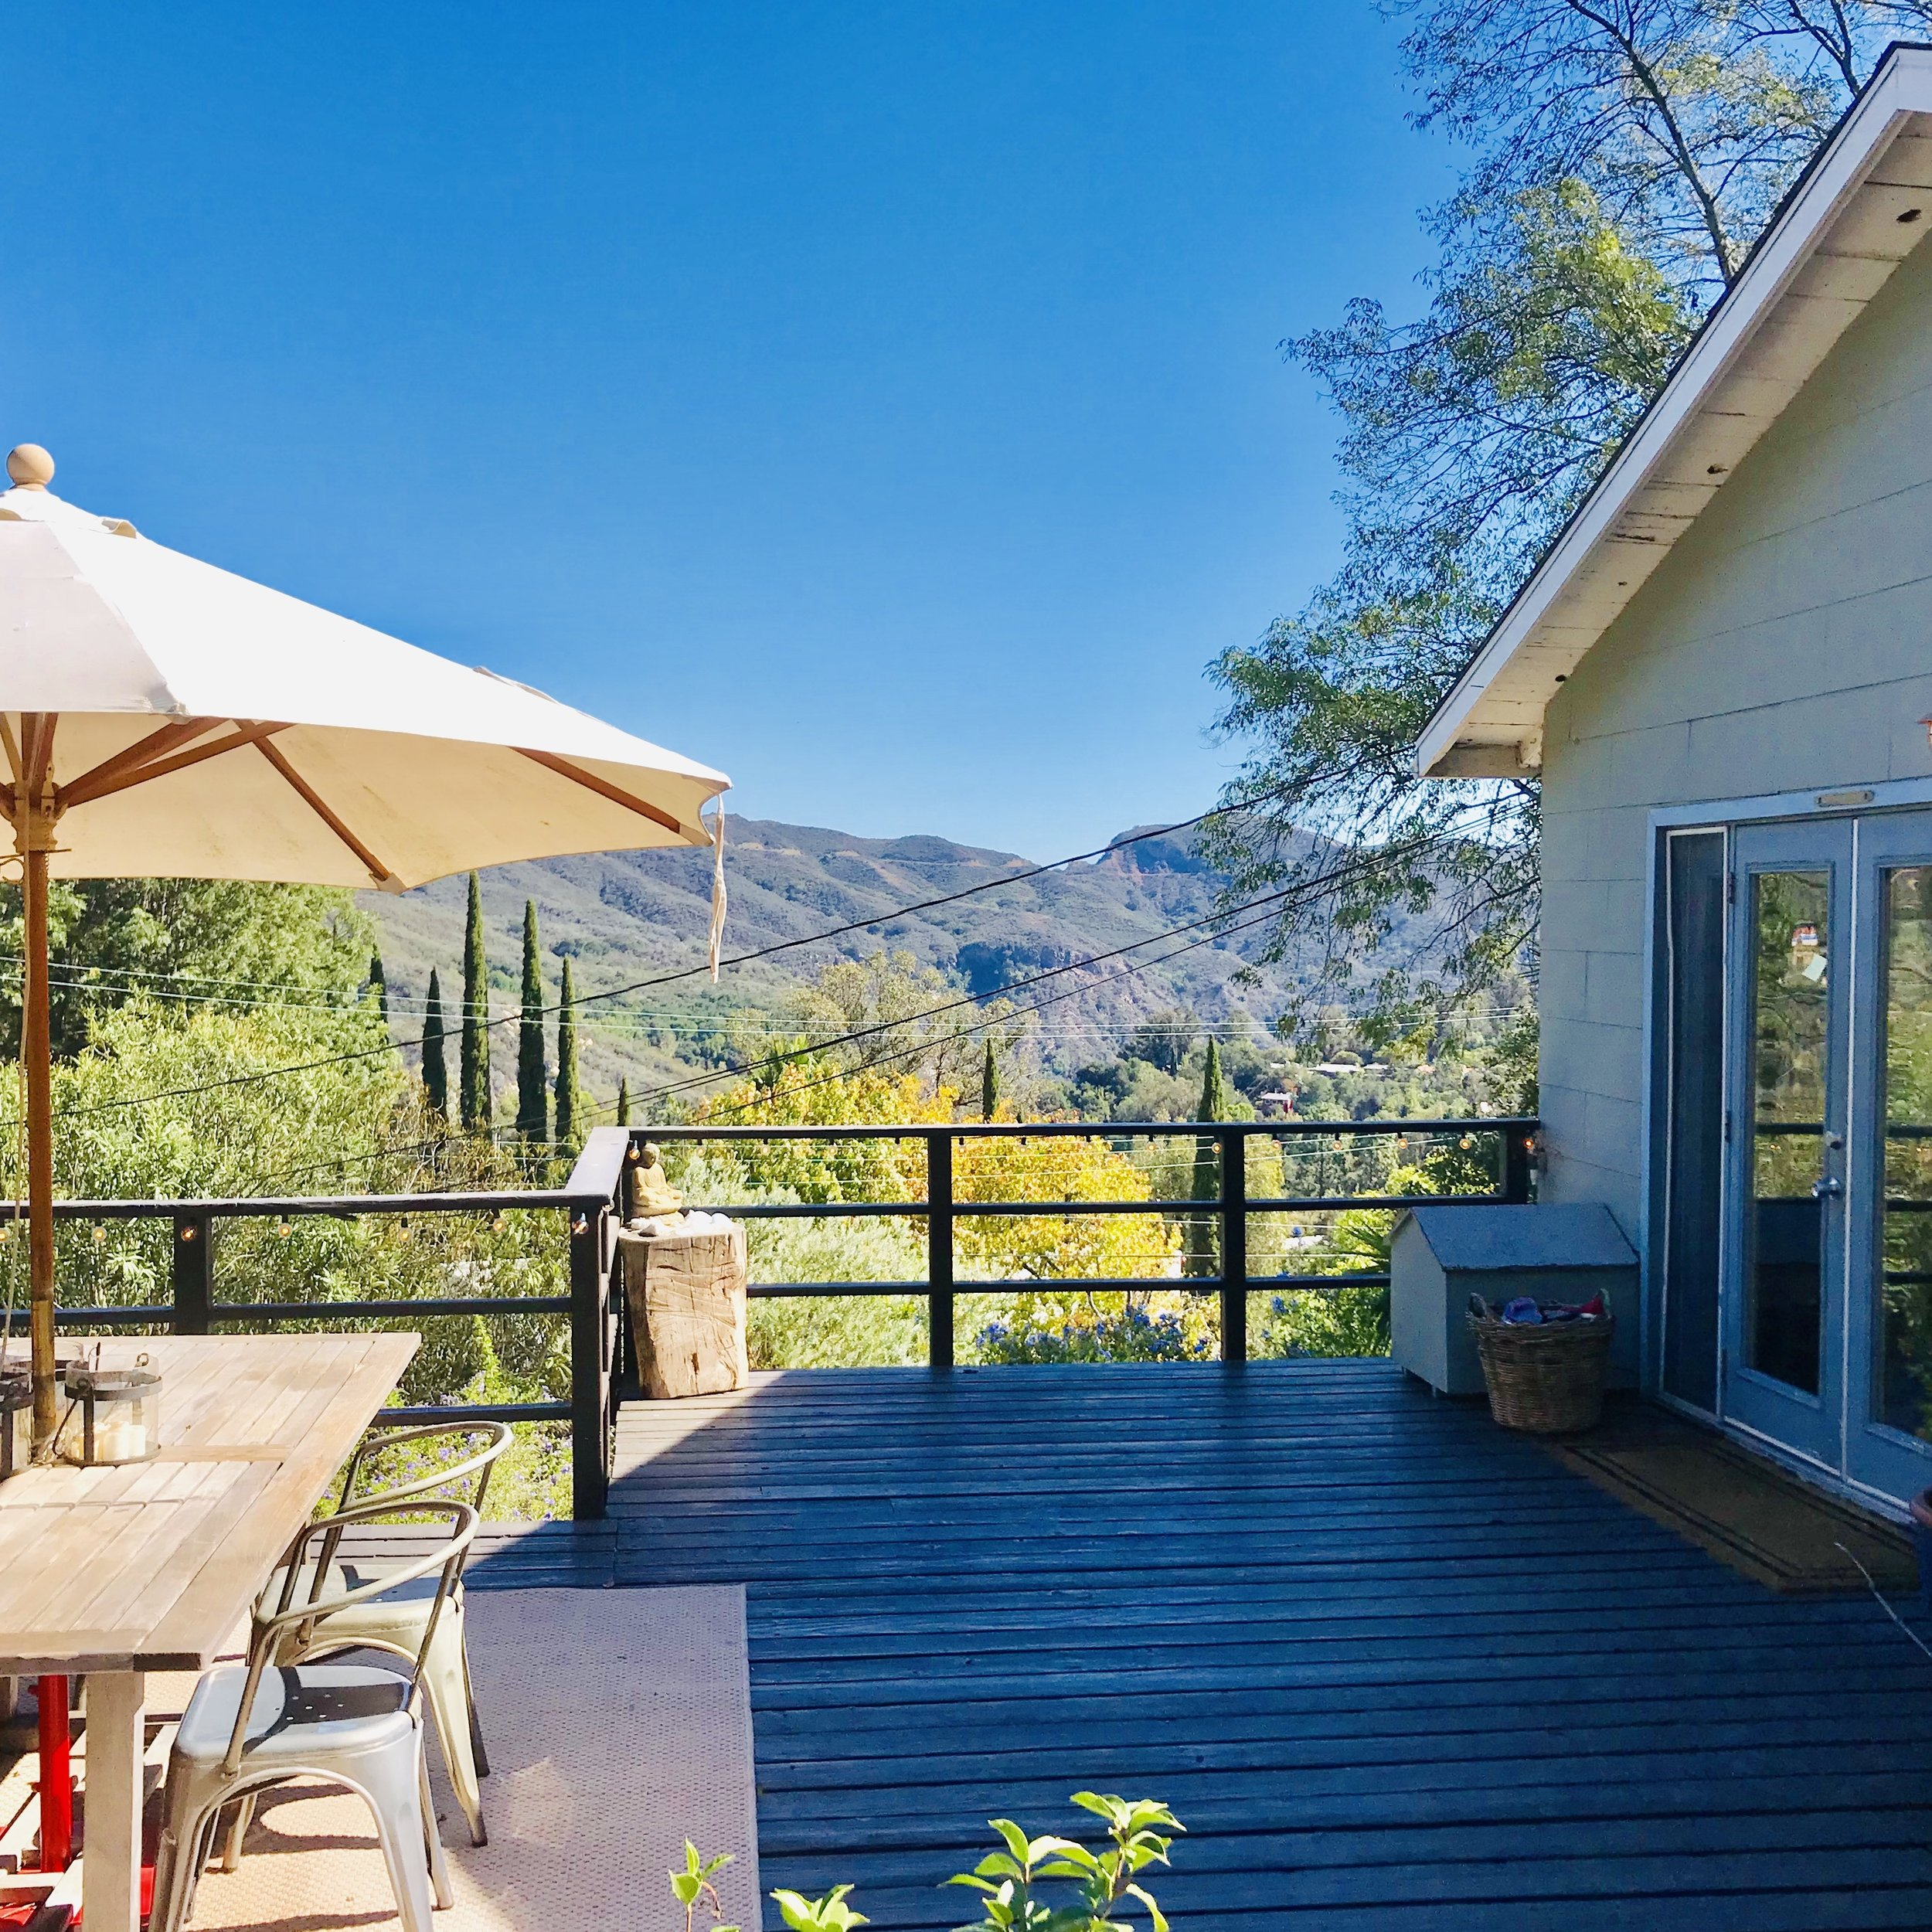 19911 Valley View Dr - Topanga$1,000,000Represented Buyers